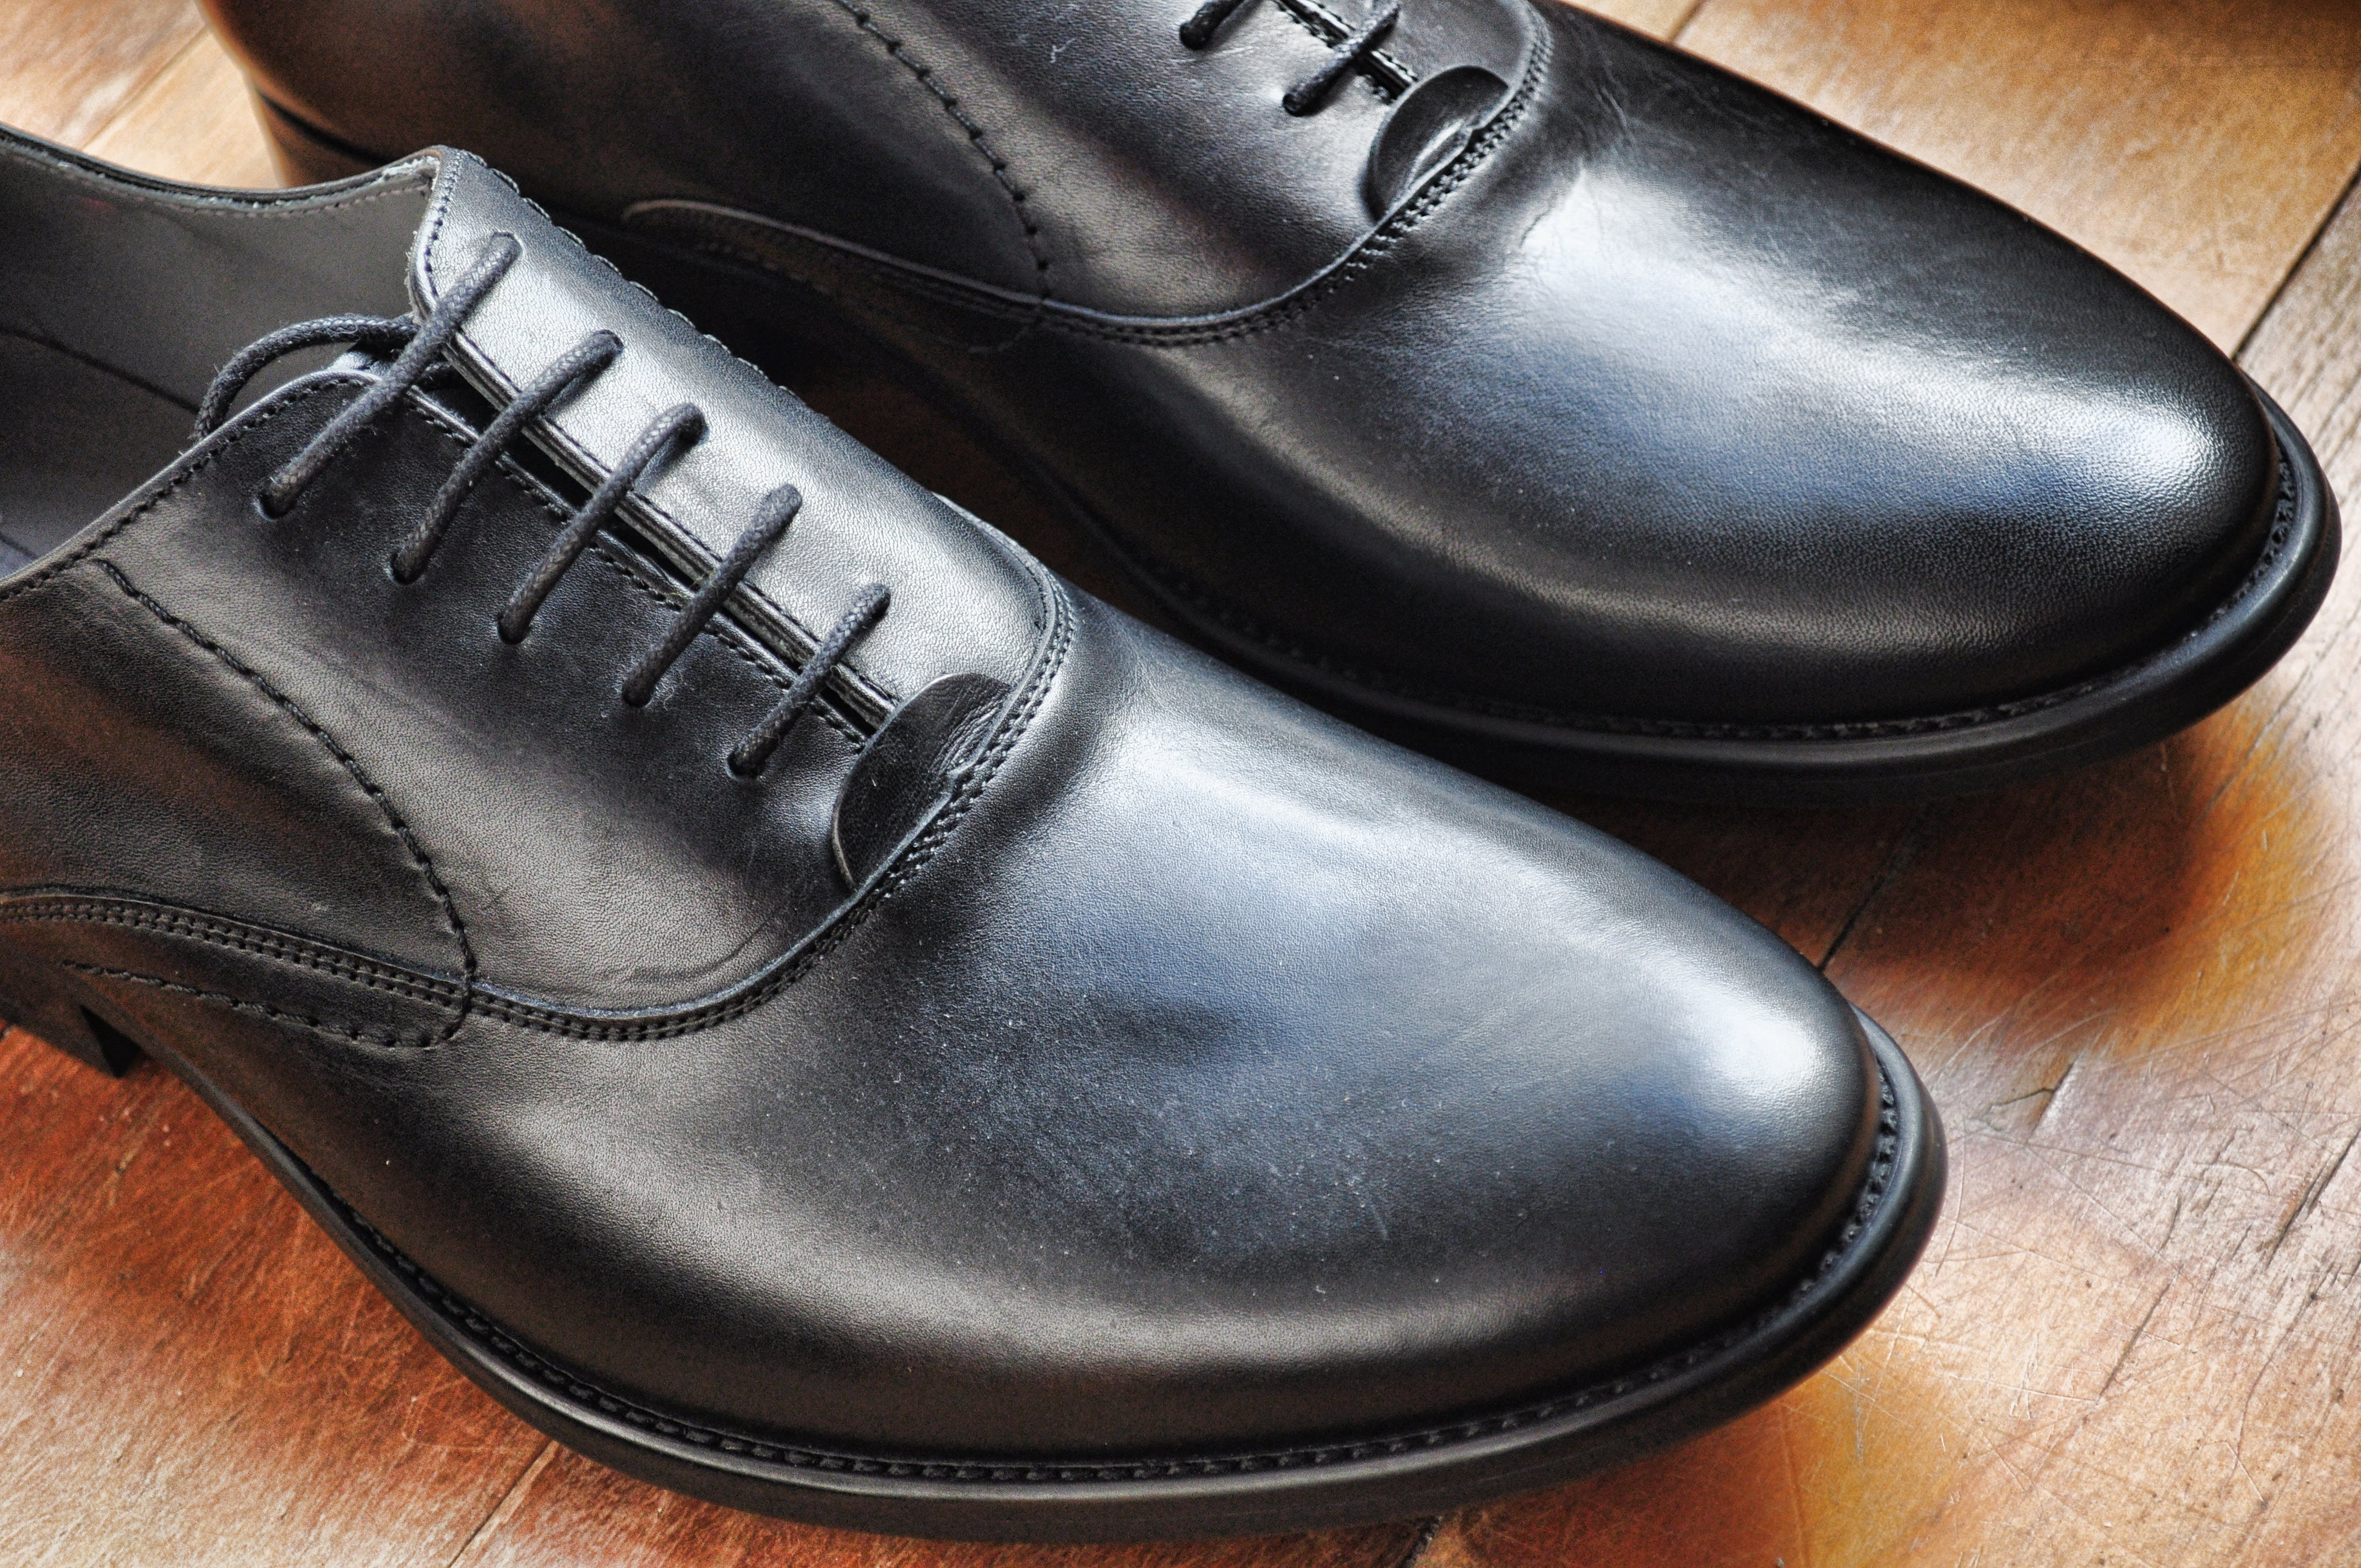 Black Leather Shoes on Brown Wooden Tile Floor